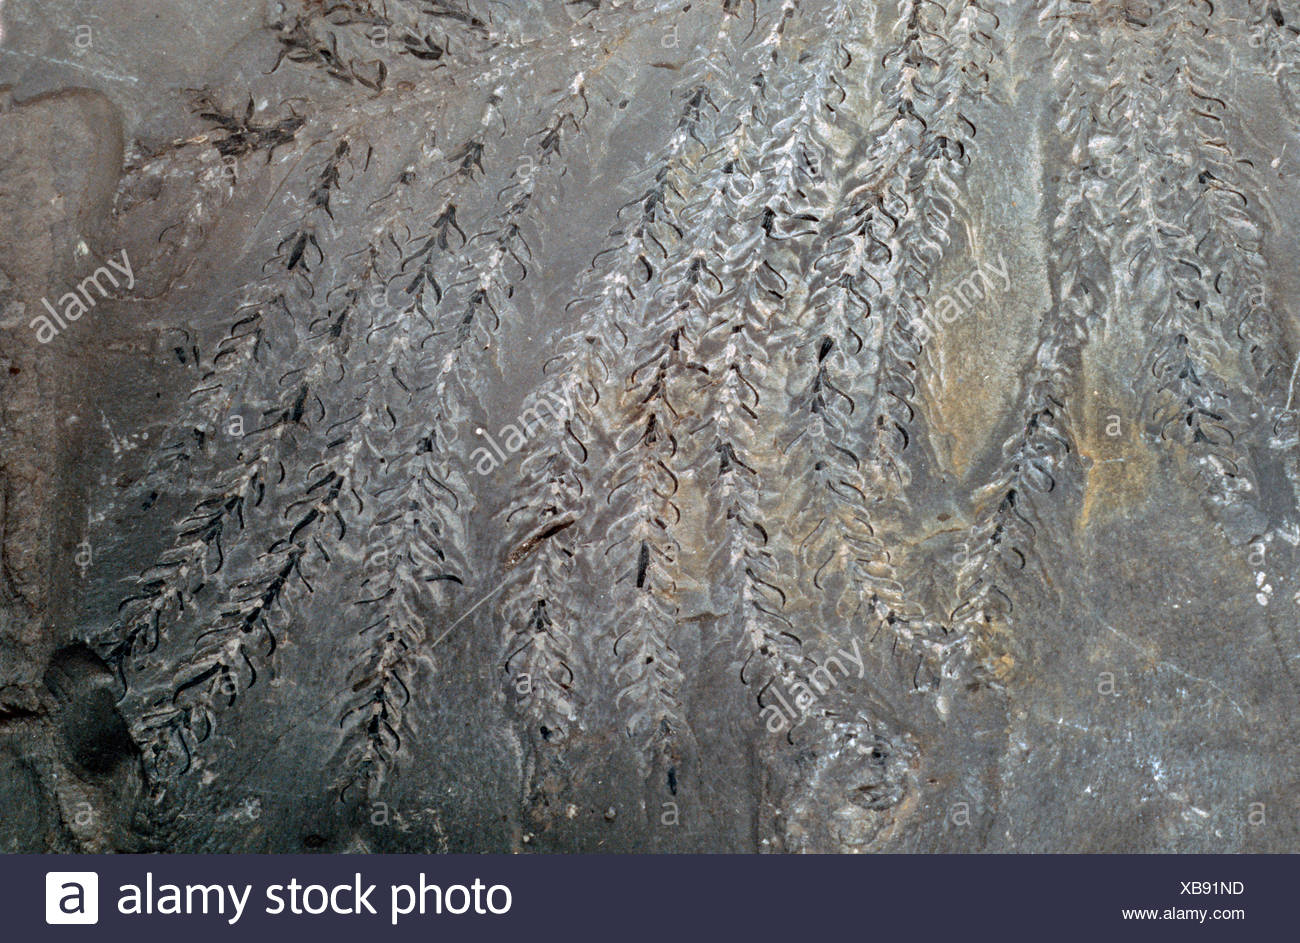 Walchia piniformis, fossil conifer, branch, Roliegend, Germany, Rhineland-Palatinate - Stock Image